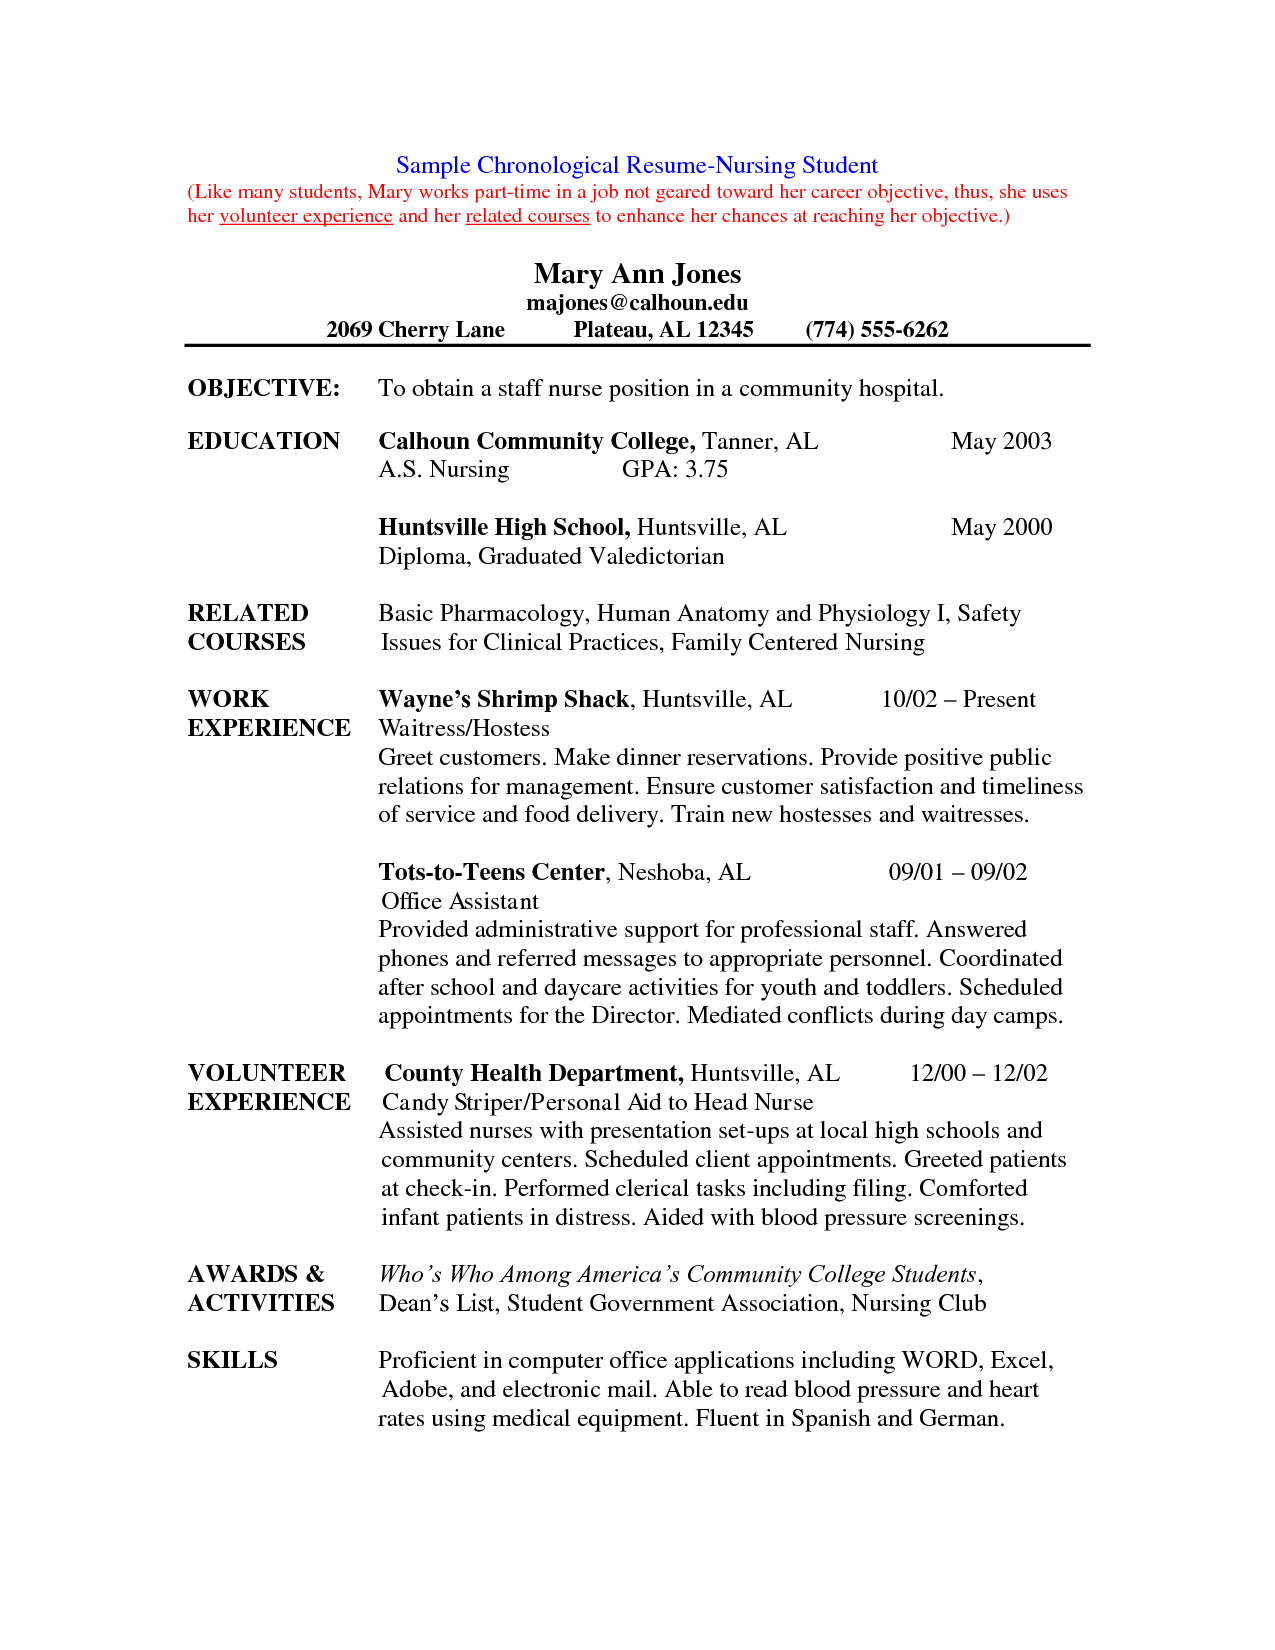 rn resume sample resume nursing resume college nursing nursing jobs travel nursing student resume template resume templates college students - Nurse Resume Examples